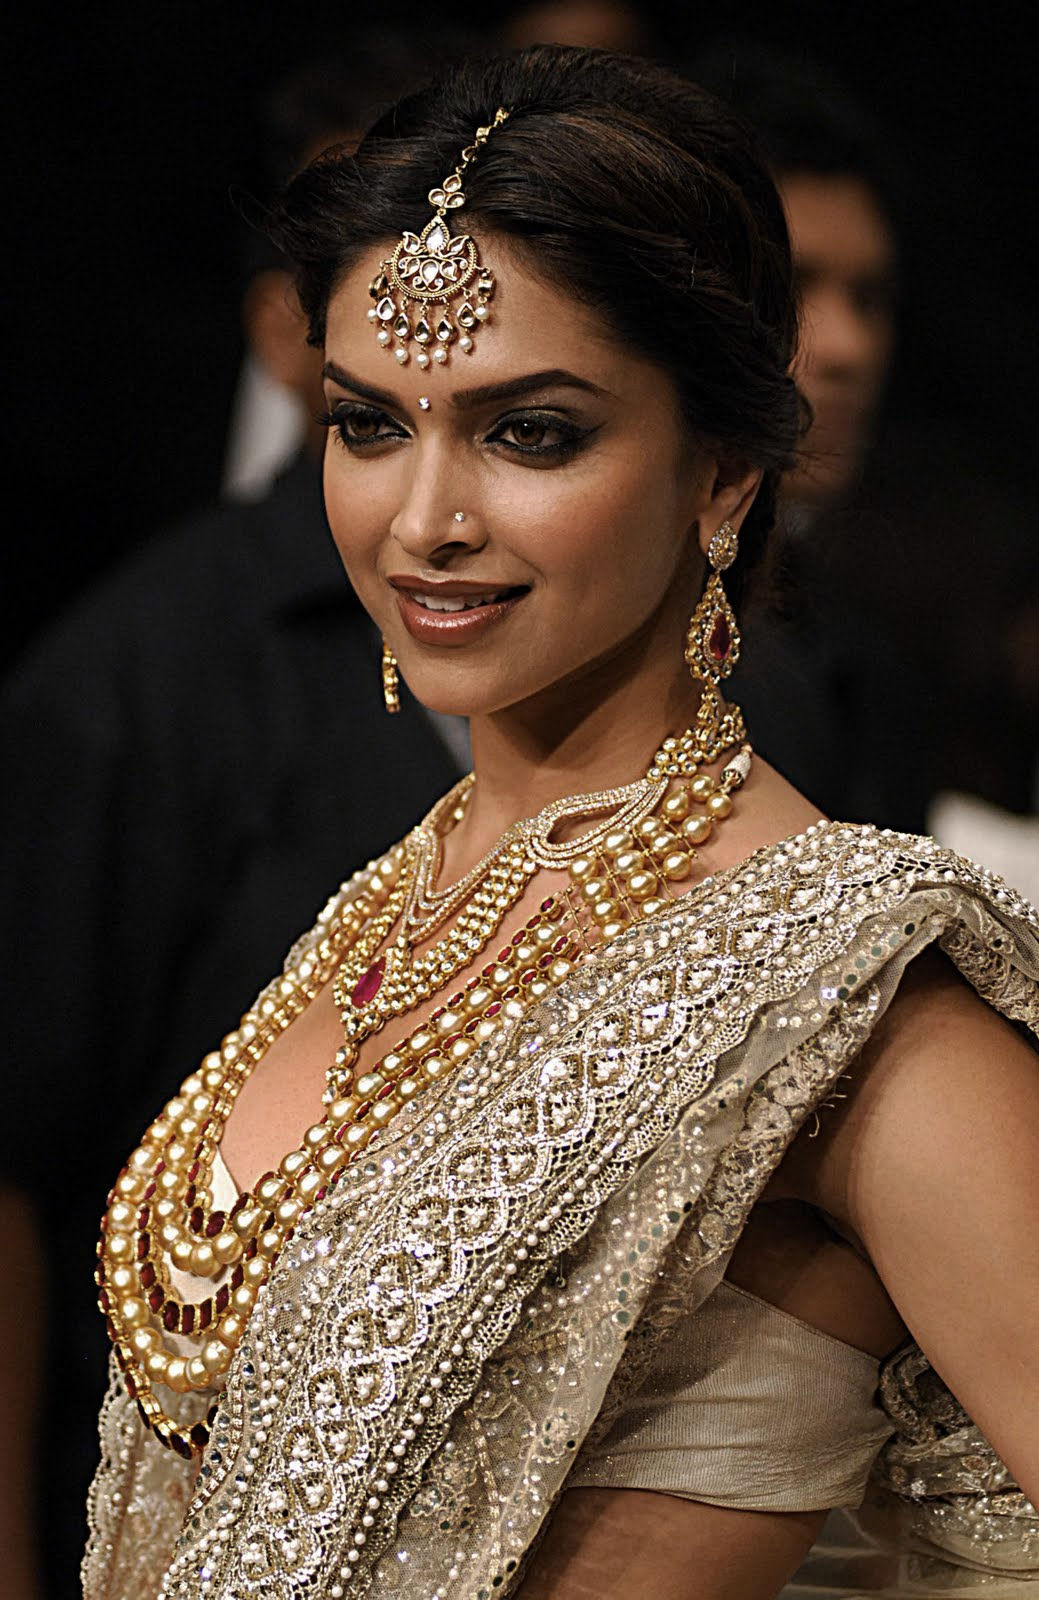 Wearing a stunning gold colour net lehanga and sparkling kundan